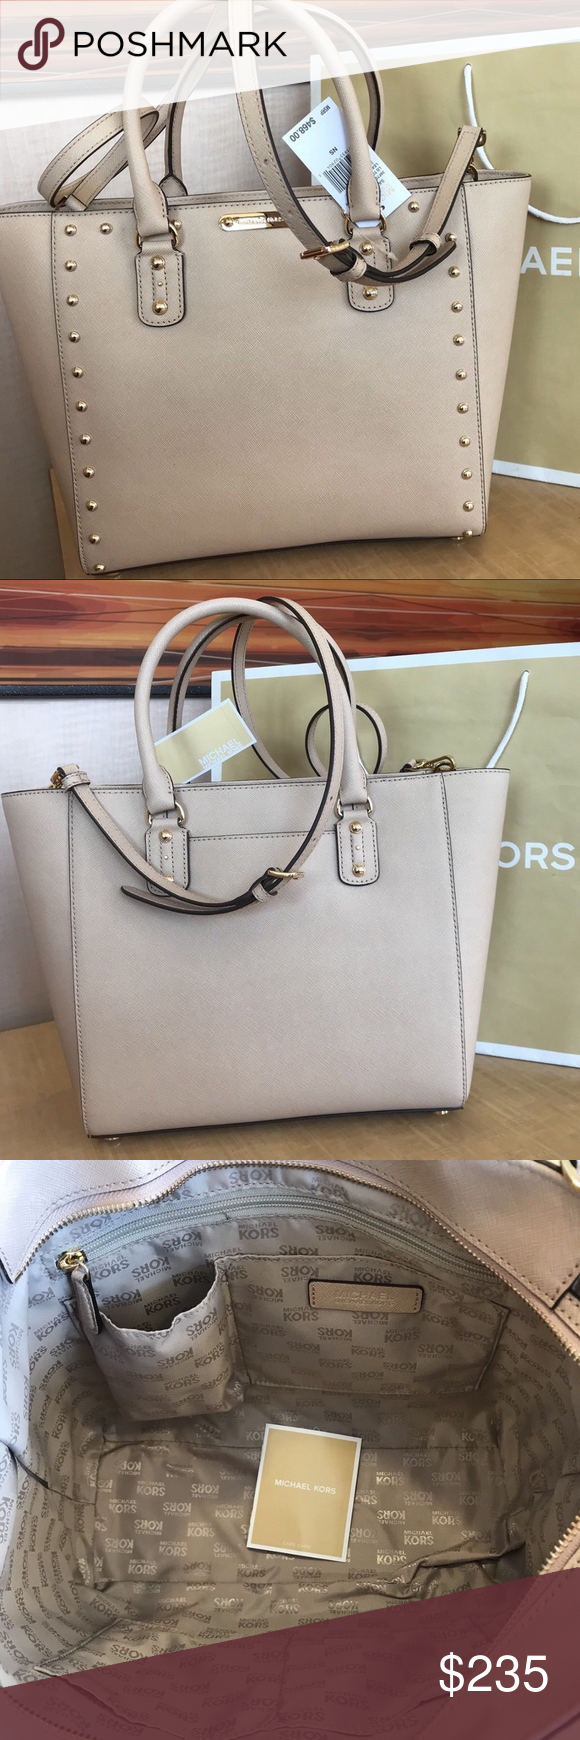 authentic Michael Kors Shoulder tote purse Brand new with tags Leather  gorgeous designs Sandrine stud Blush 28969e667f